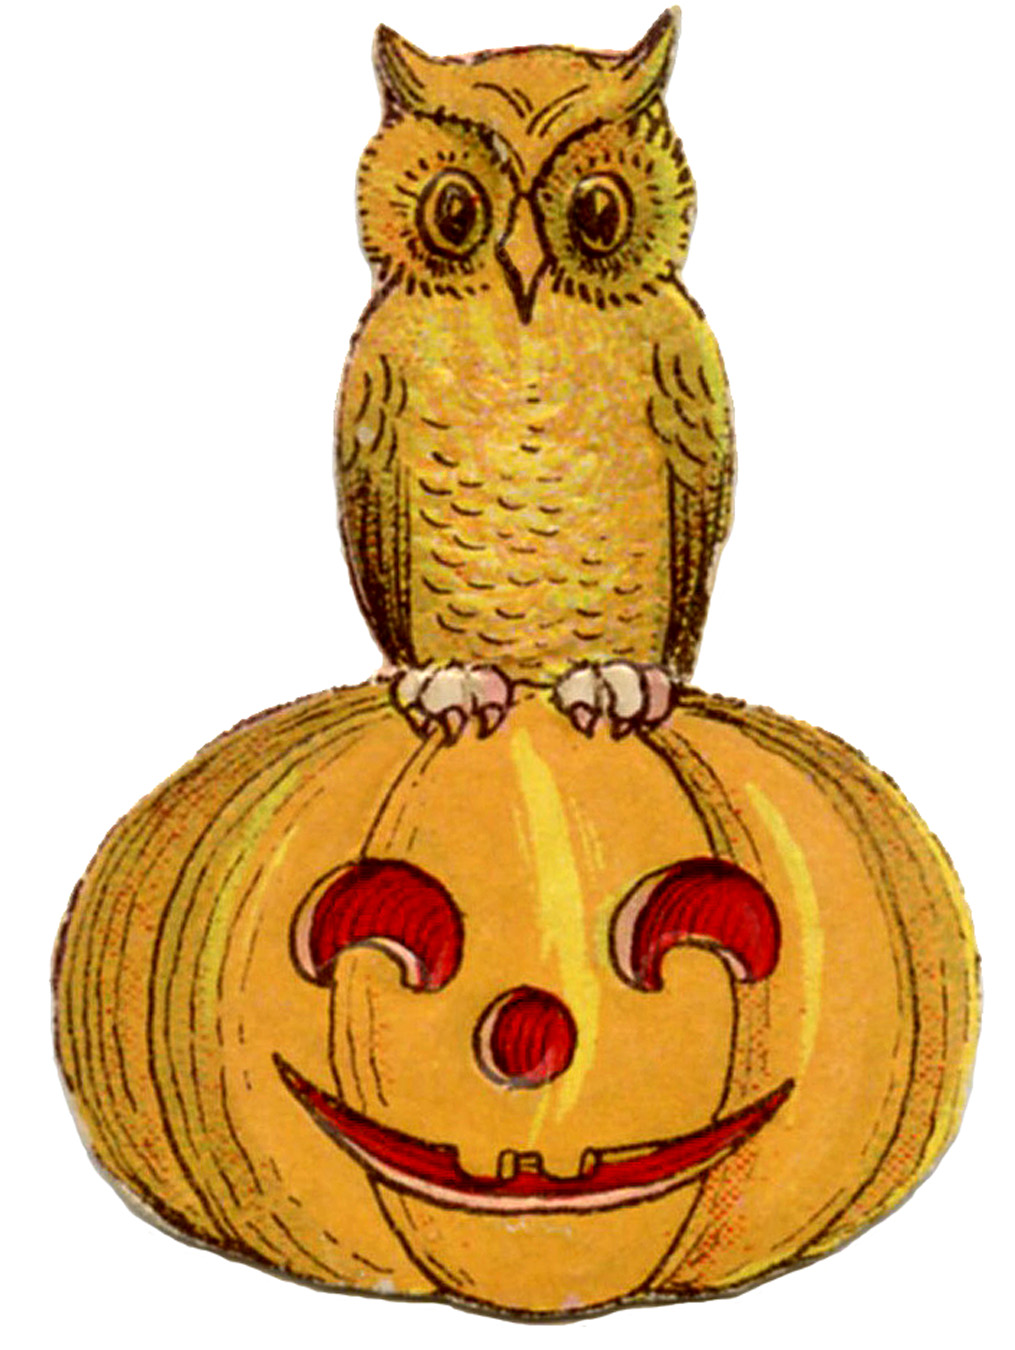 Vintage Halloween Clip Art - Cute Owl on Pumpkin - The ...